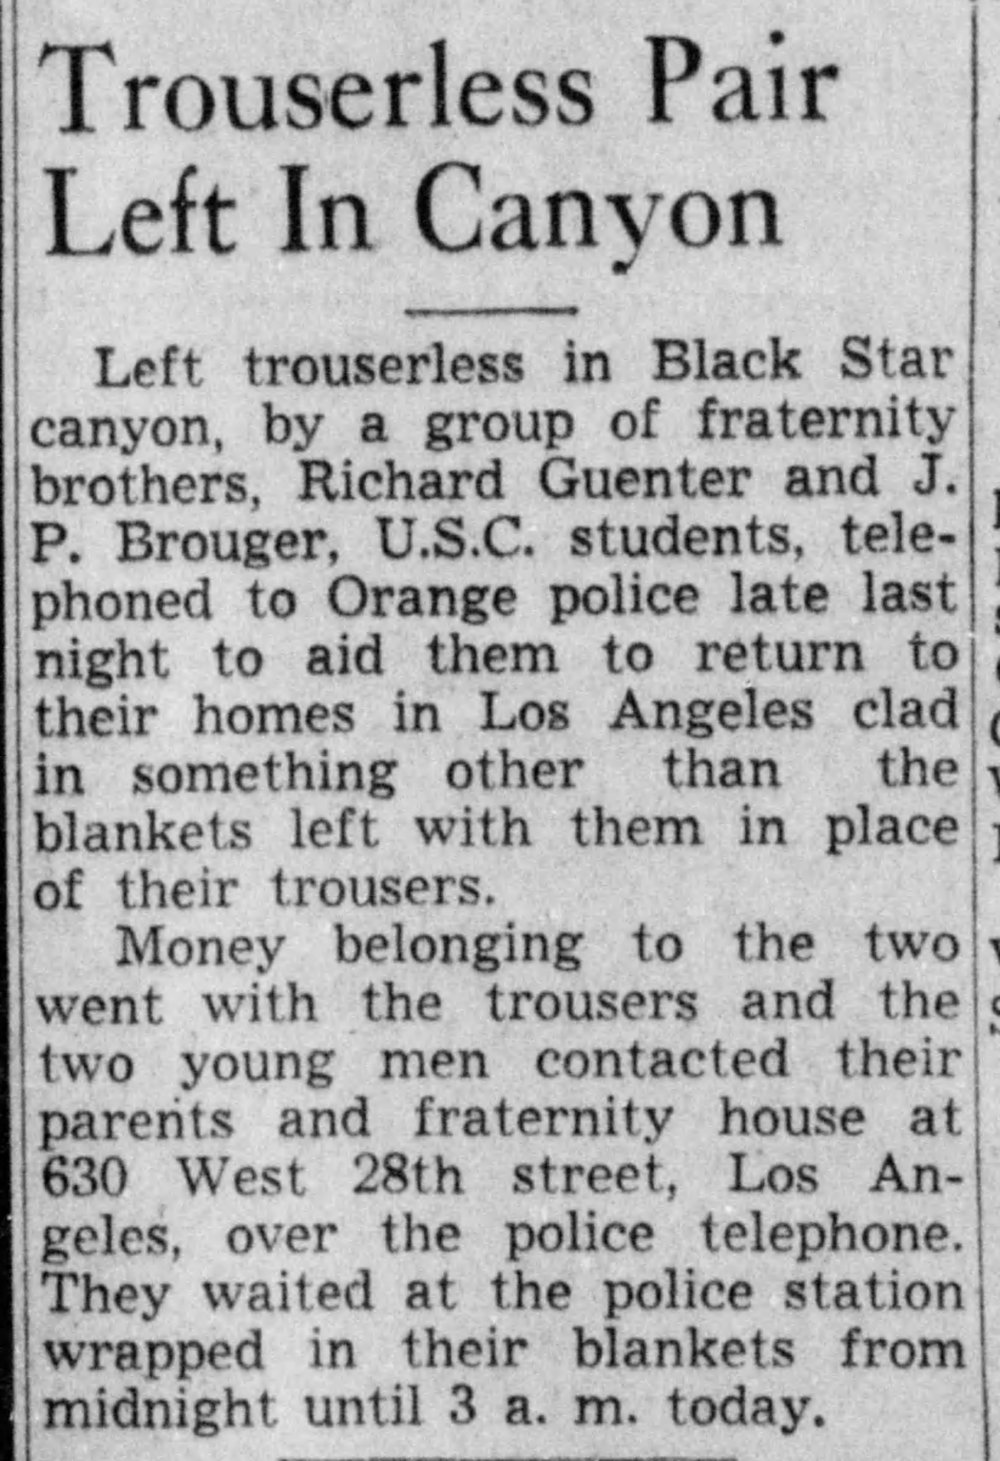 From Santa Ana Register, 1940